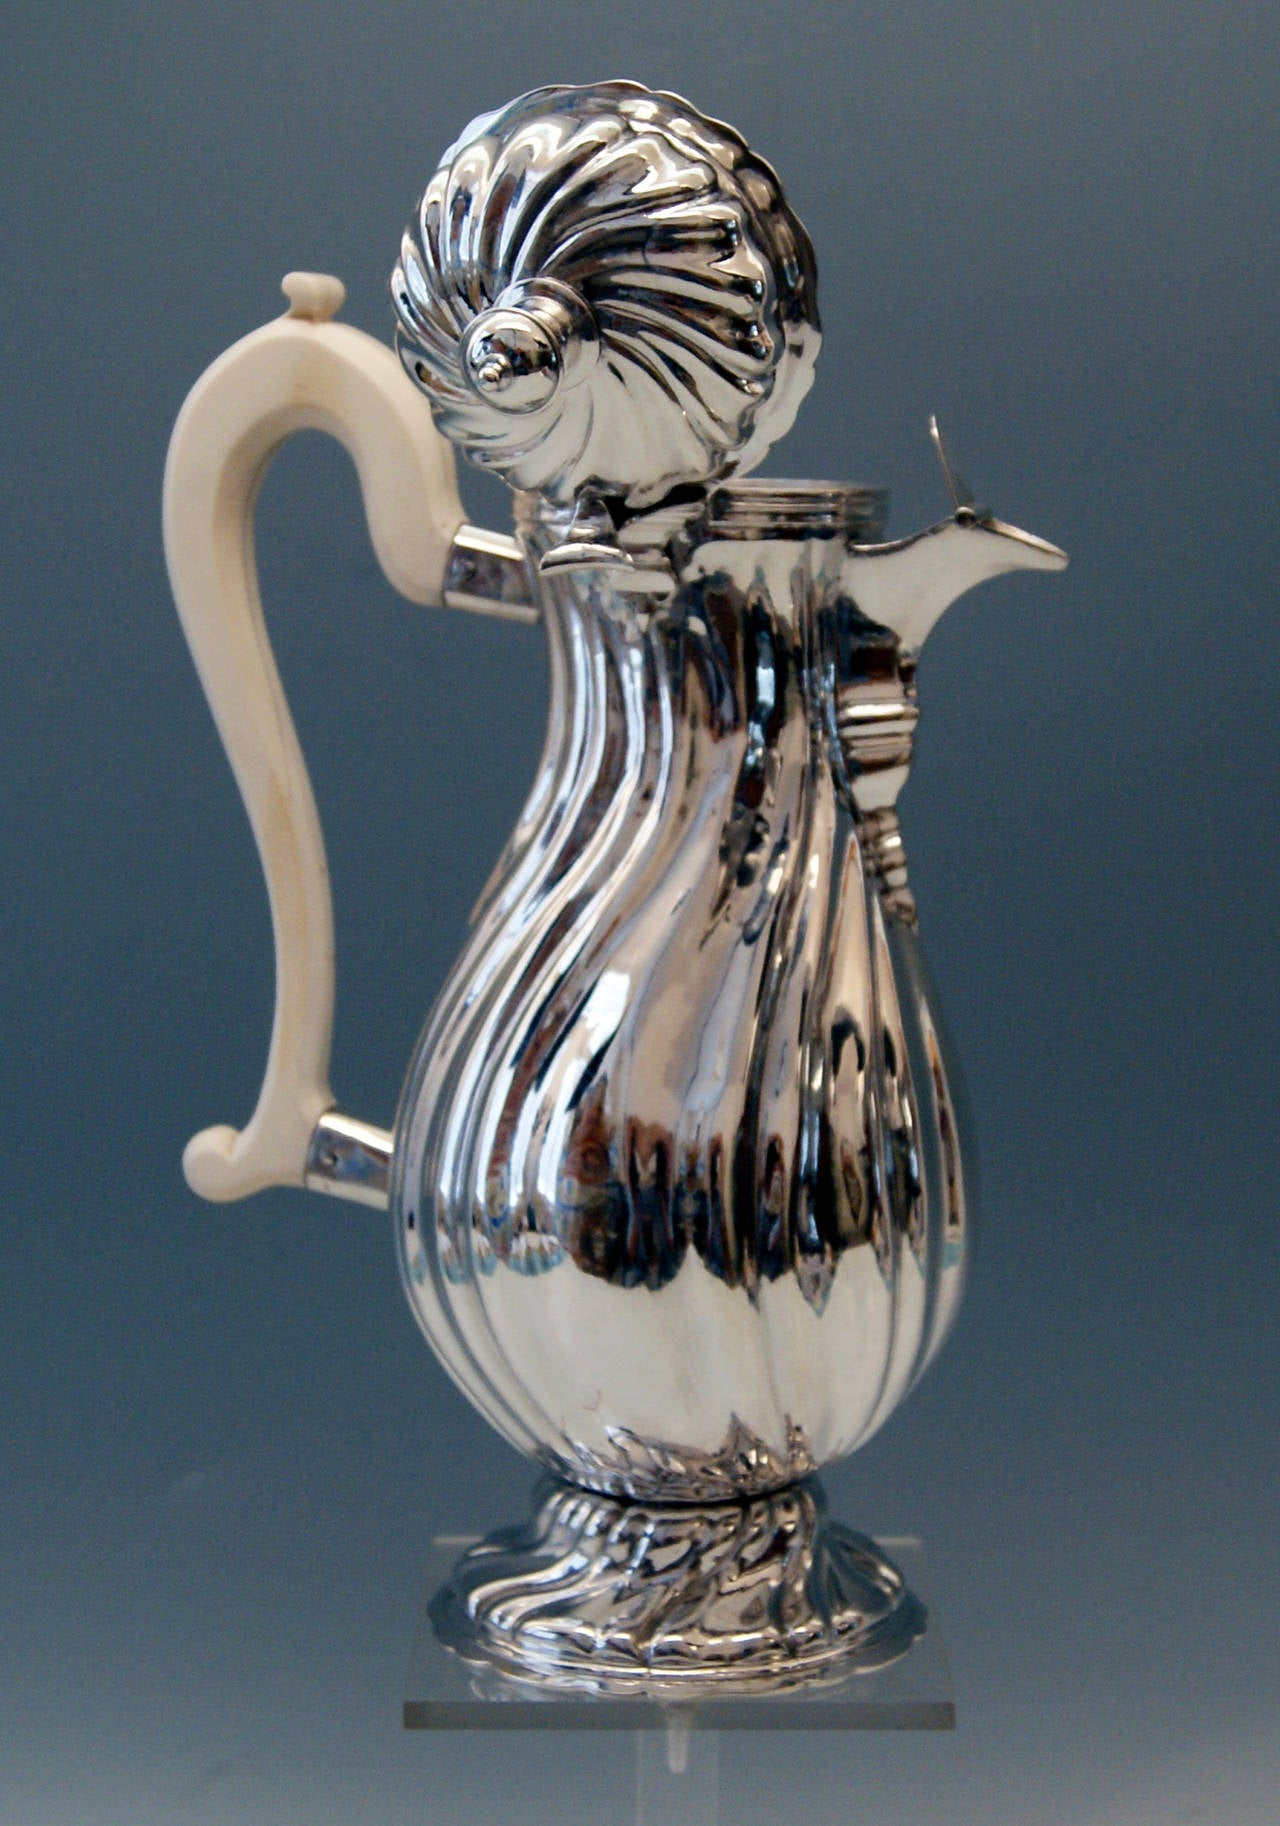 Silver Baroque Milk/Coffee Pot Augsburg Germany J.G. Kloss, circa 1761-1763 In Excellent Condition For Sale In Vienna, AT